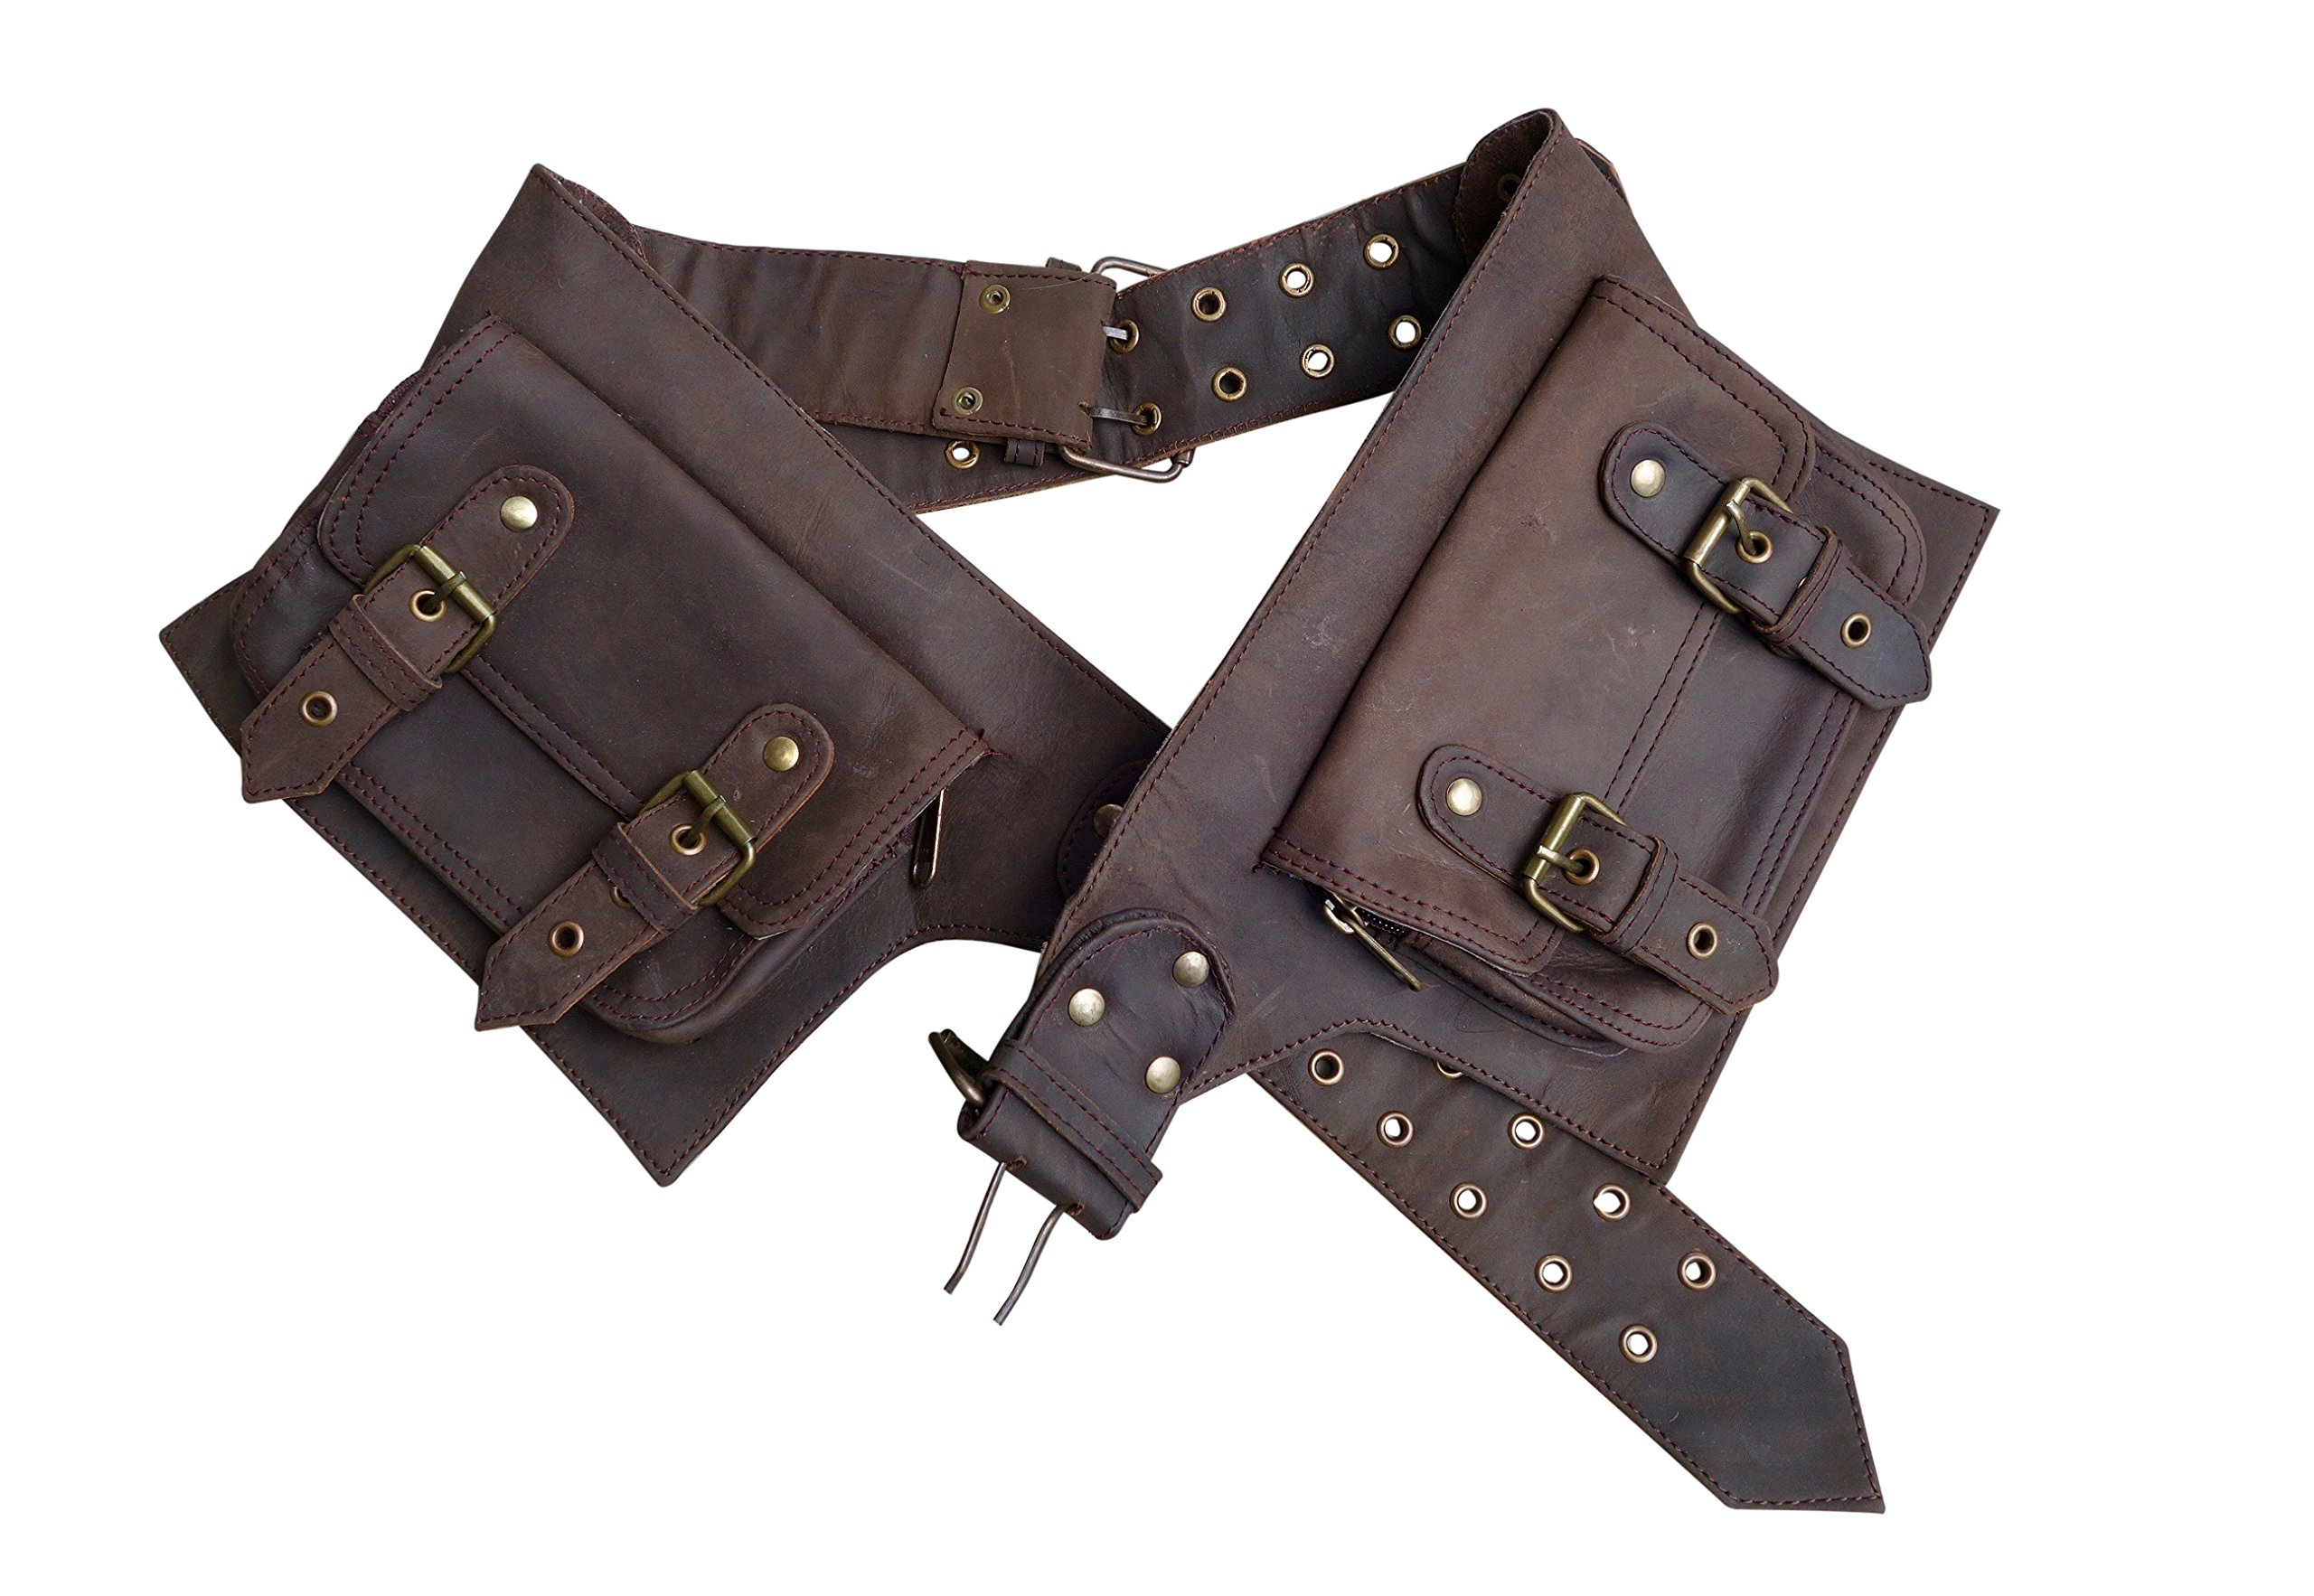 Leather Utility Belt | Adjustable, 4 Pocket | Saddle | Leather Utility Belt | Adjustable Saddle, 4 Pocket | festival, cosplay, fits phone (Brown)